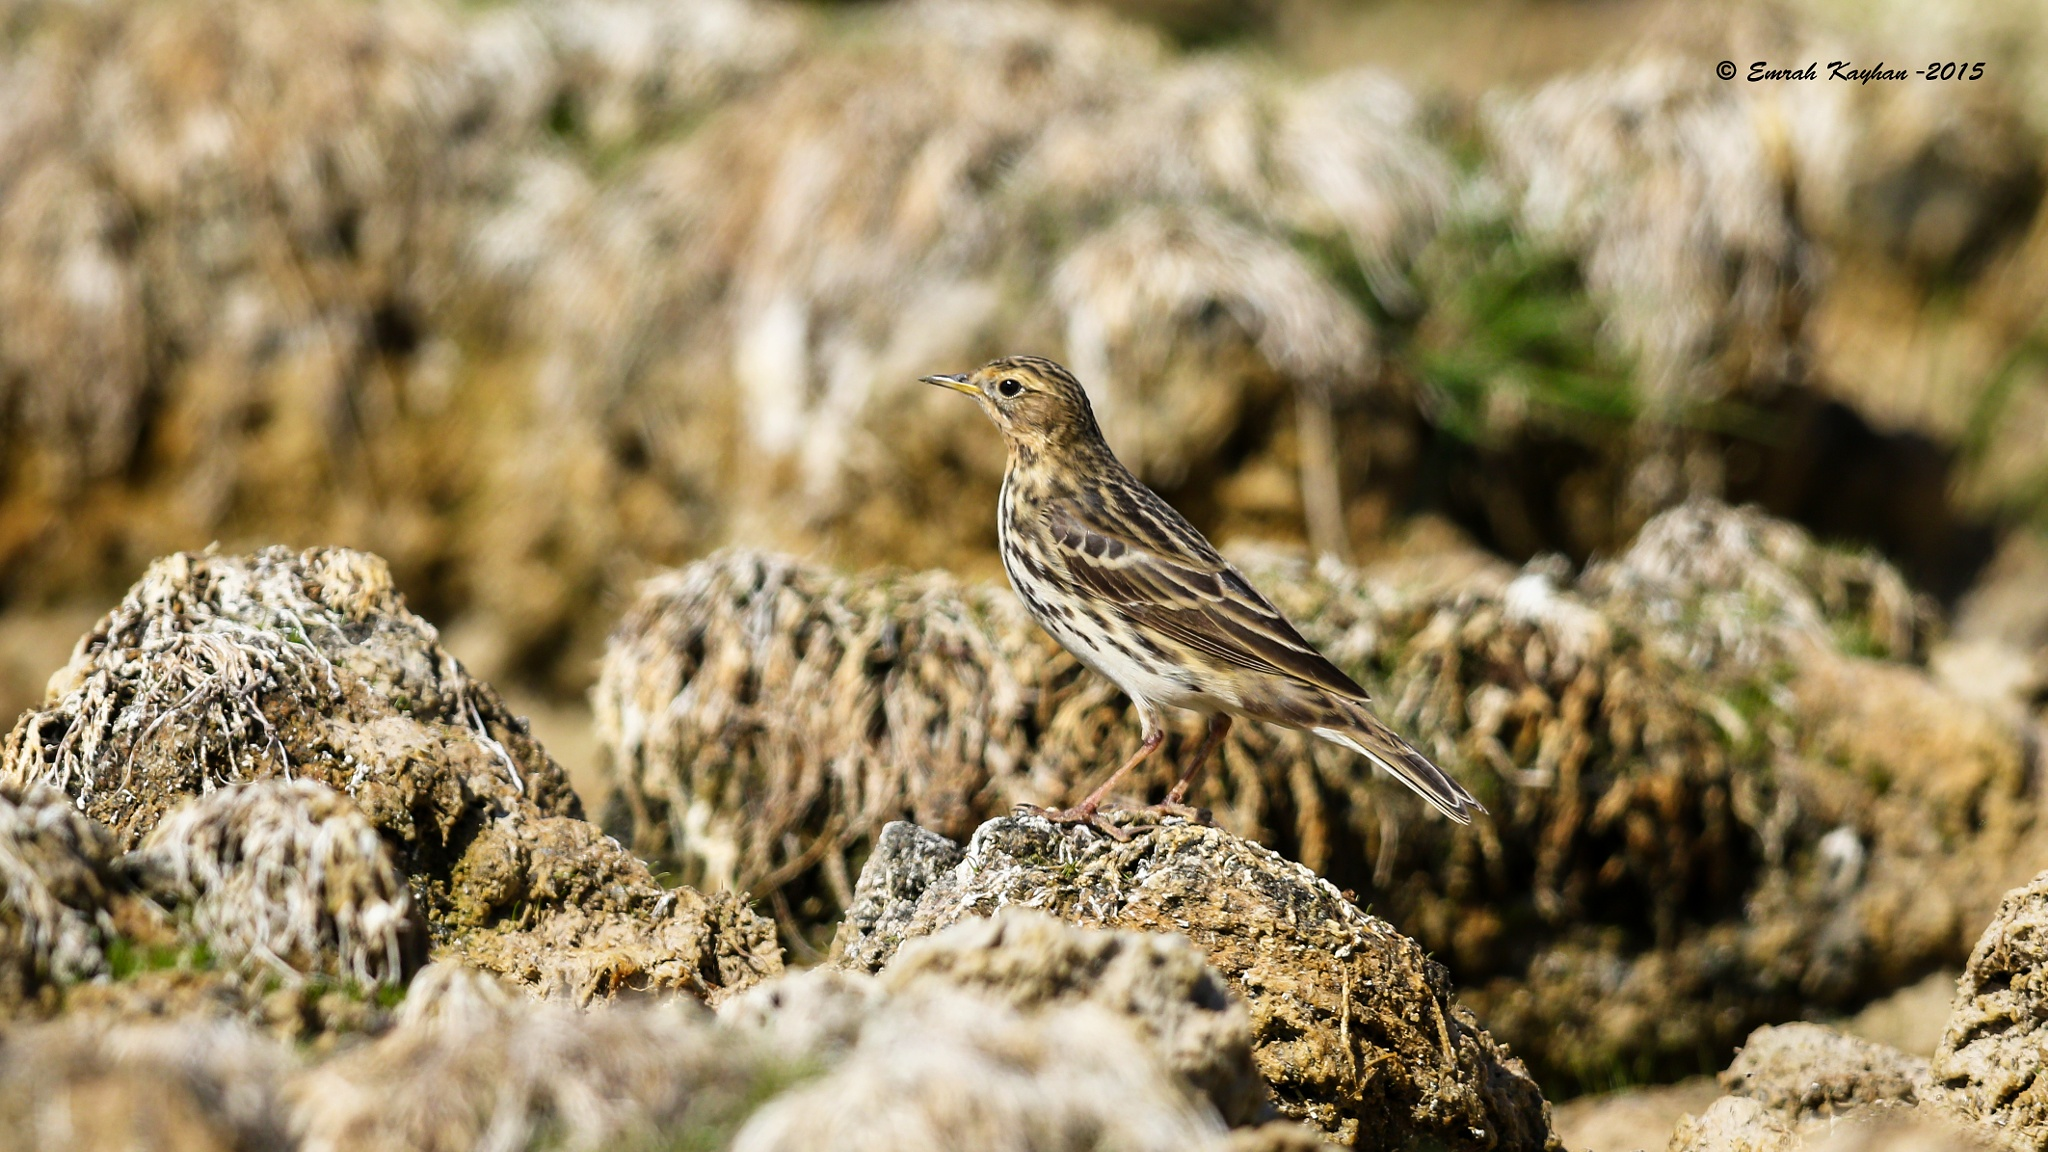 Red throated Pipit by EmrahKayhan